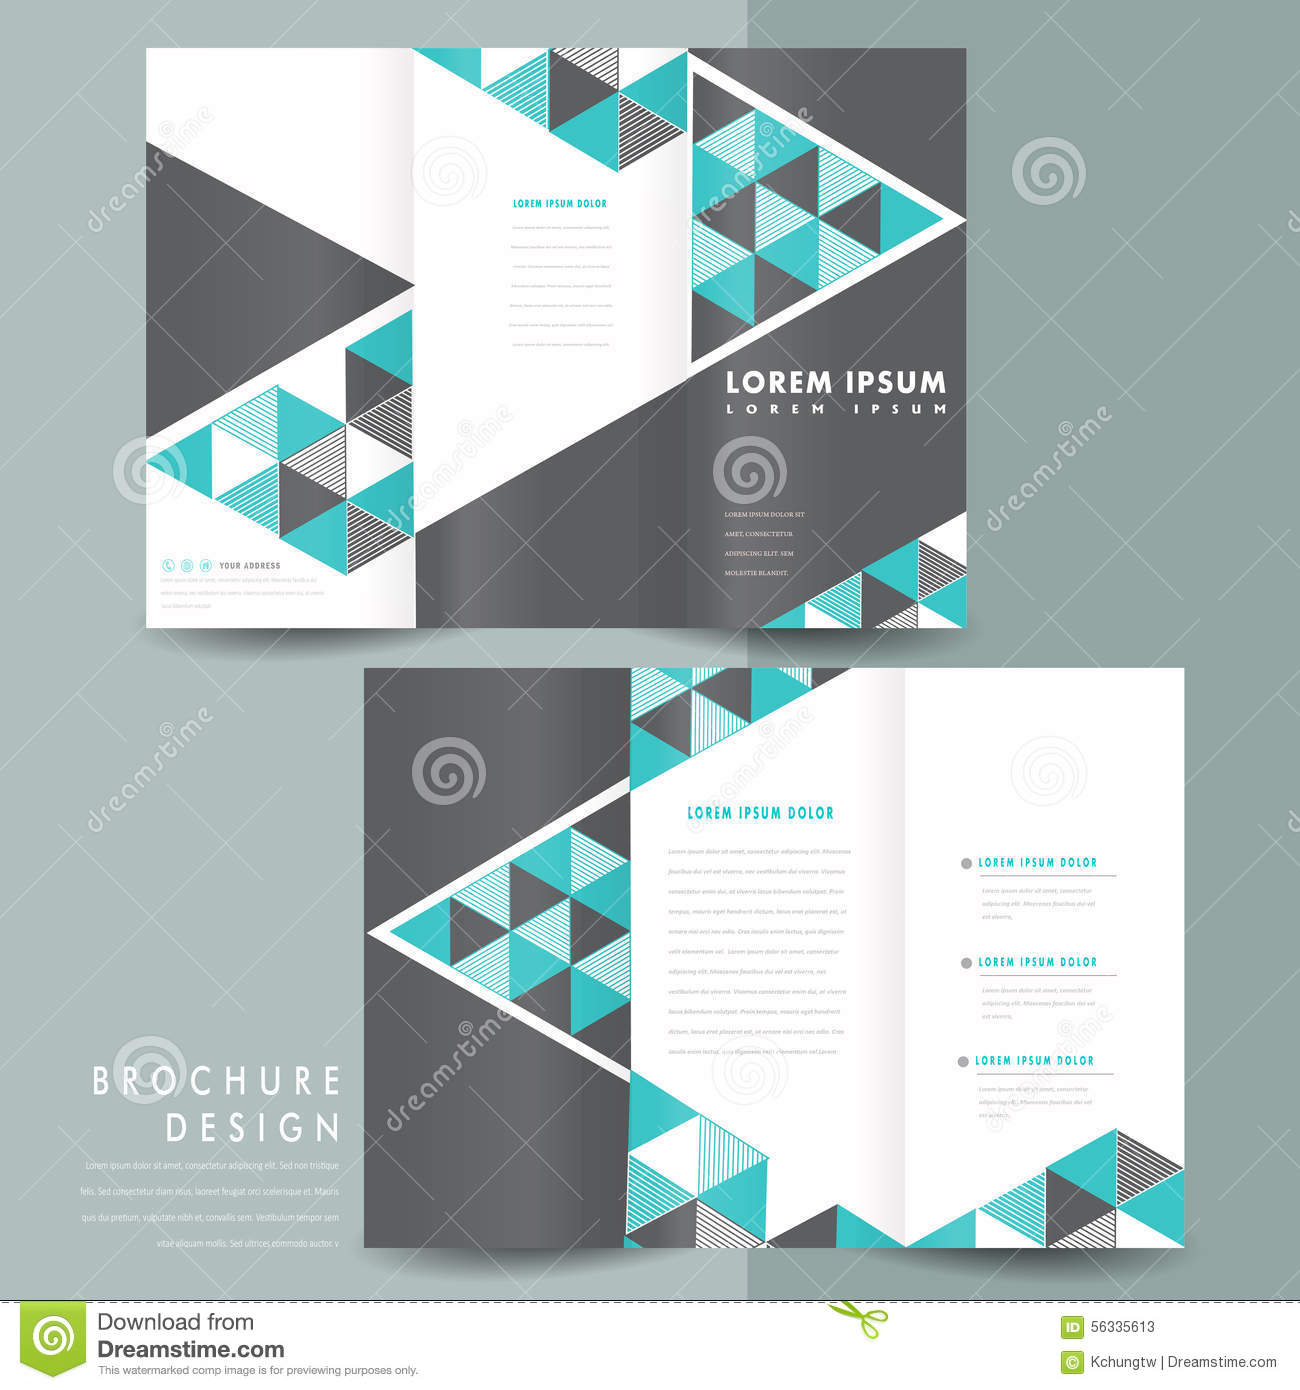 Folded Triangle Graphic Design